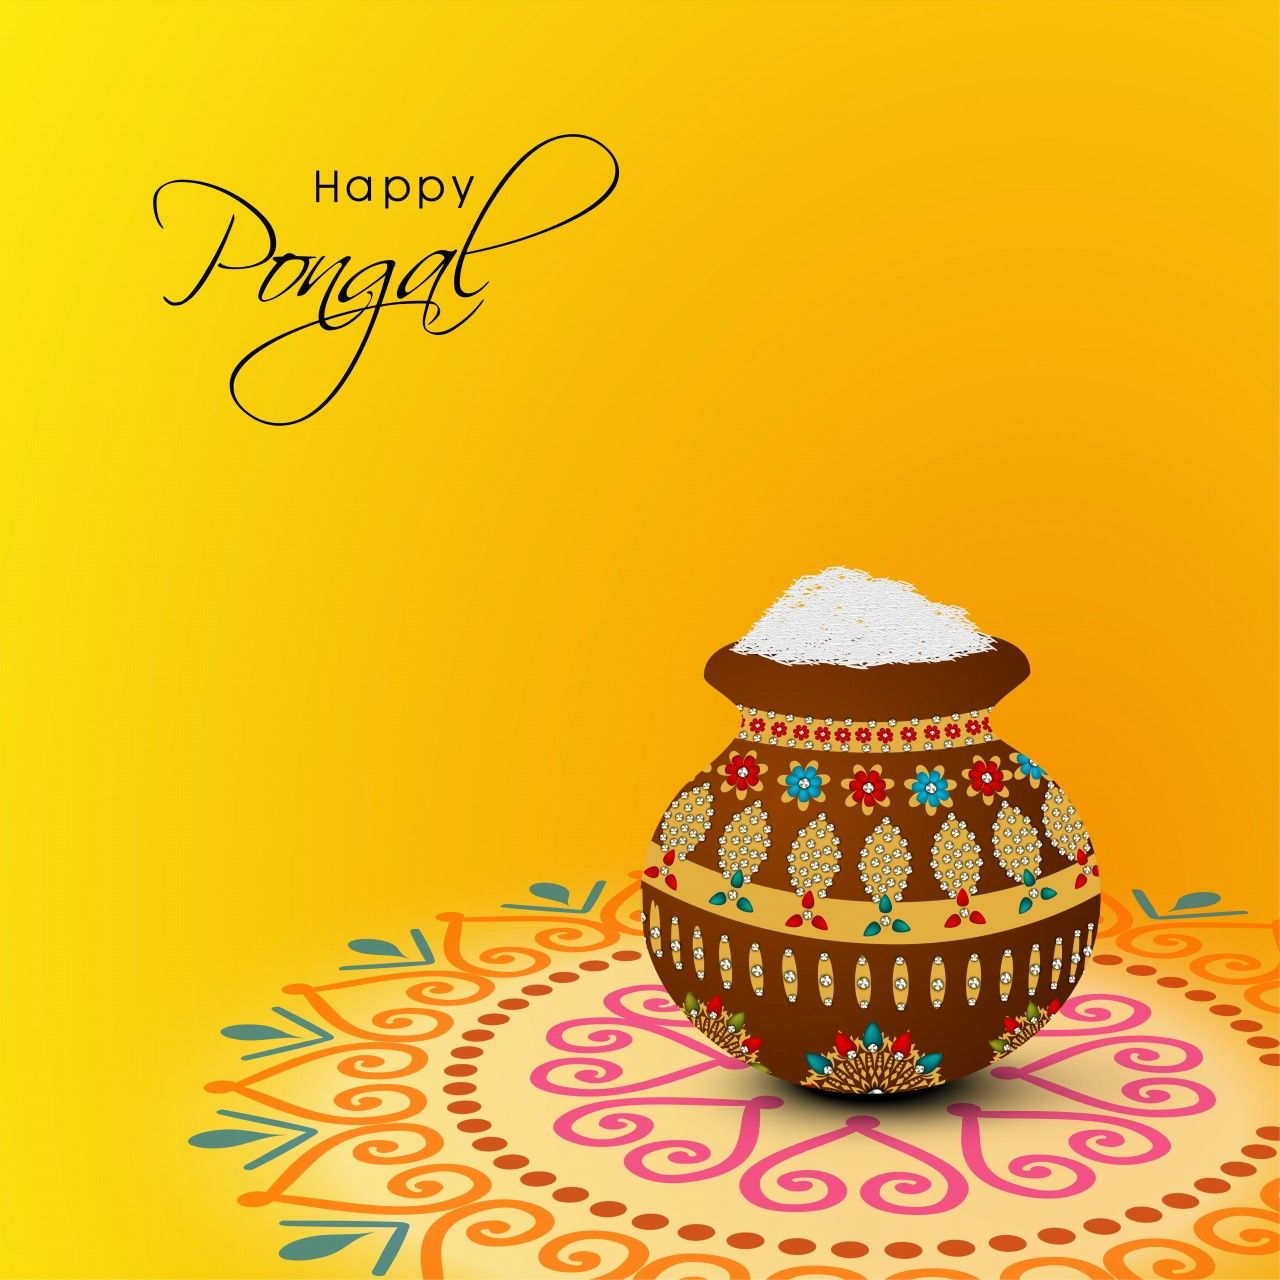 India Emporium Wishes You A Very Happypongal Wishing